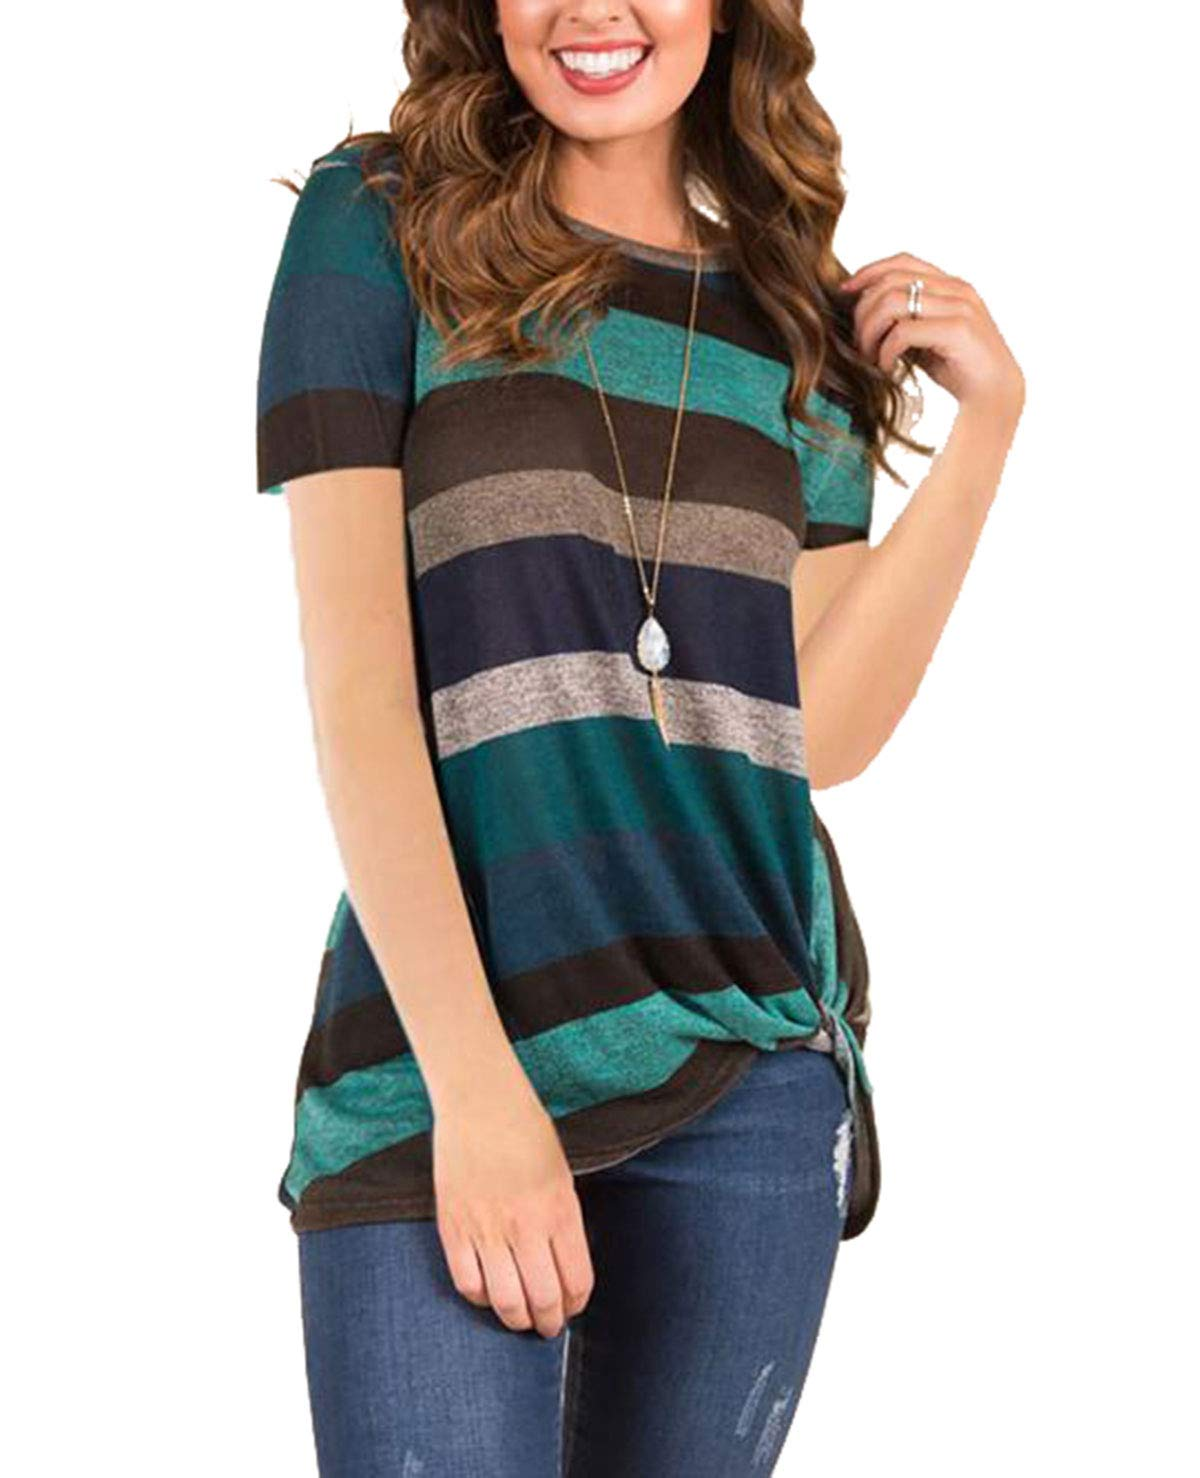 Eanklosco Women's Tops Striped T-Shirts Front Knot Tunic Casual Blouses Short Sleeve (XL/UK 14, Green)